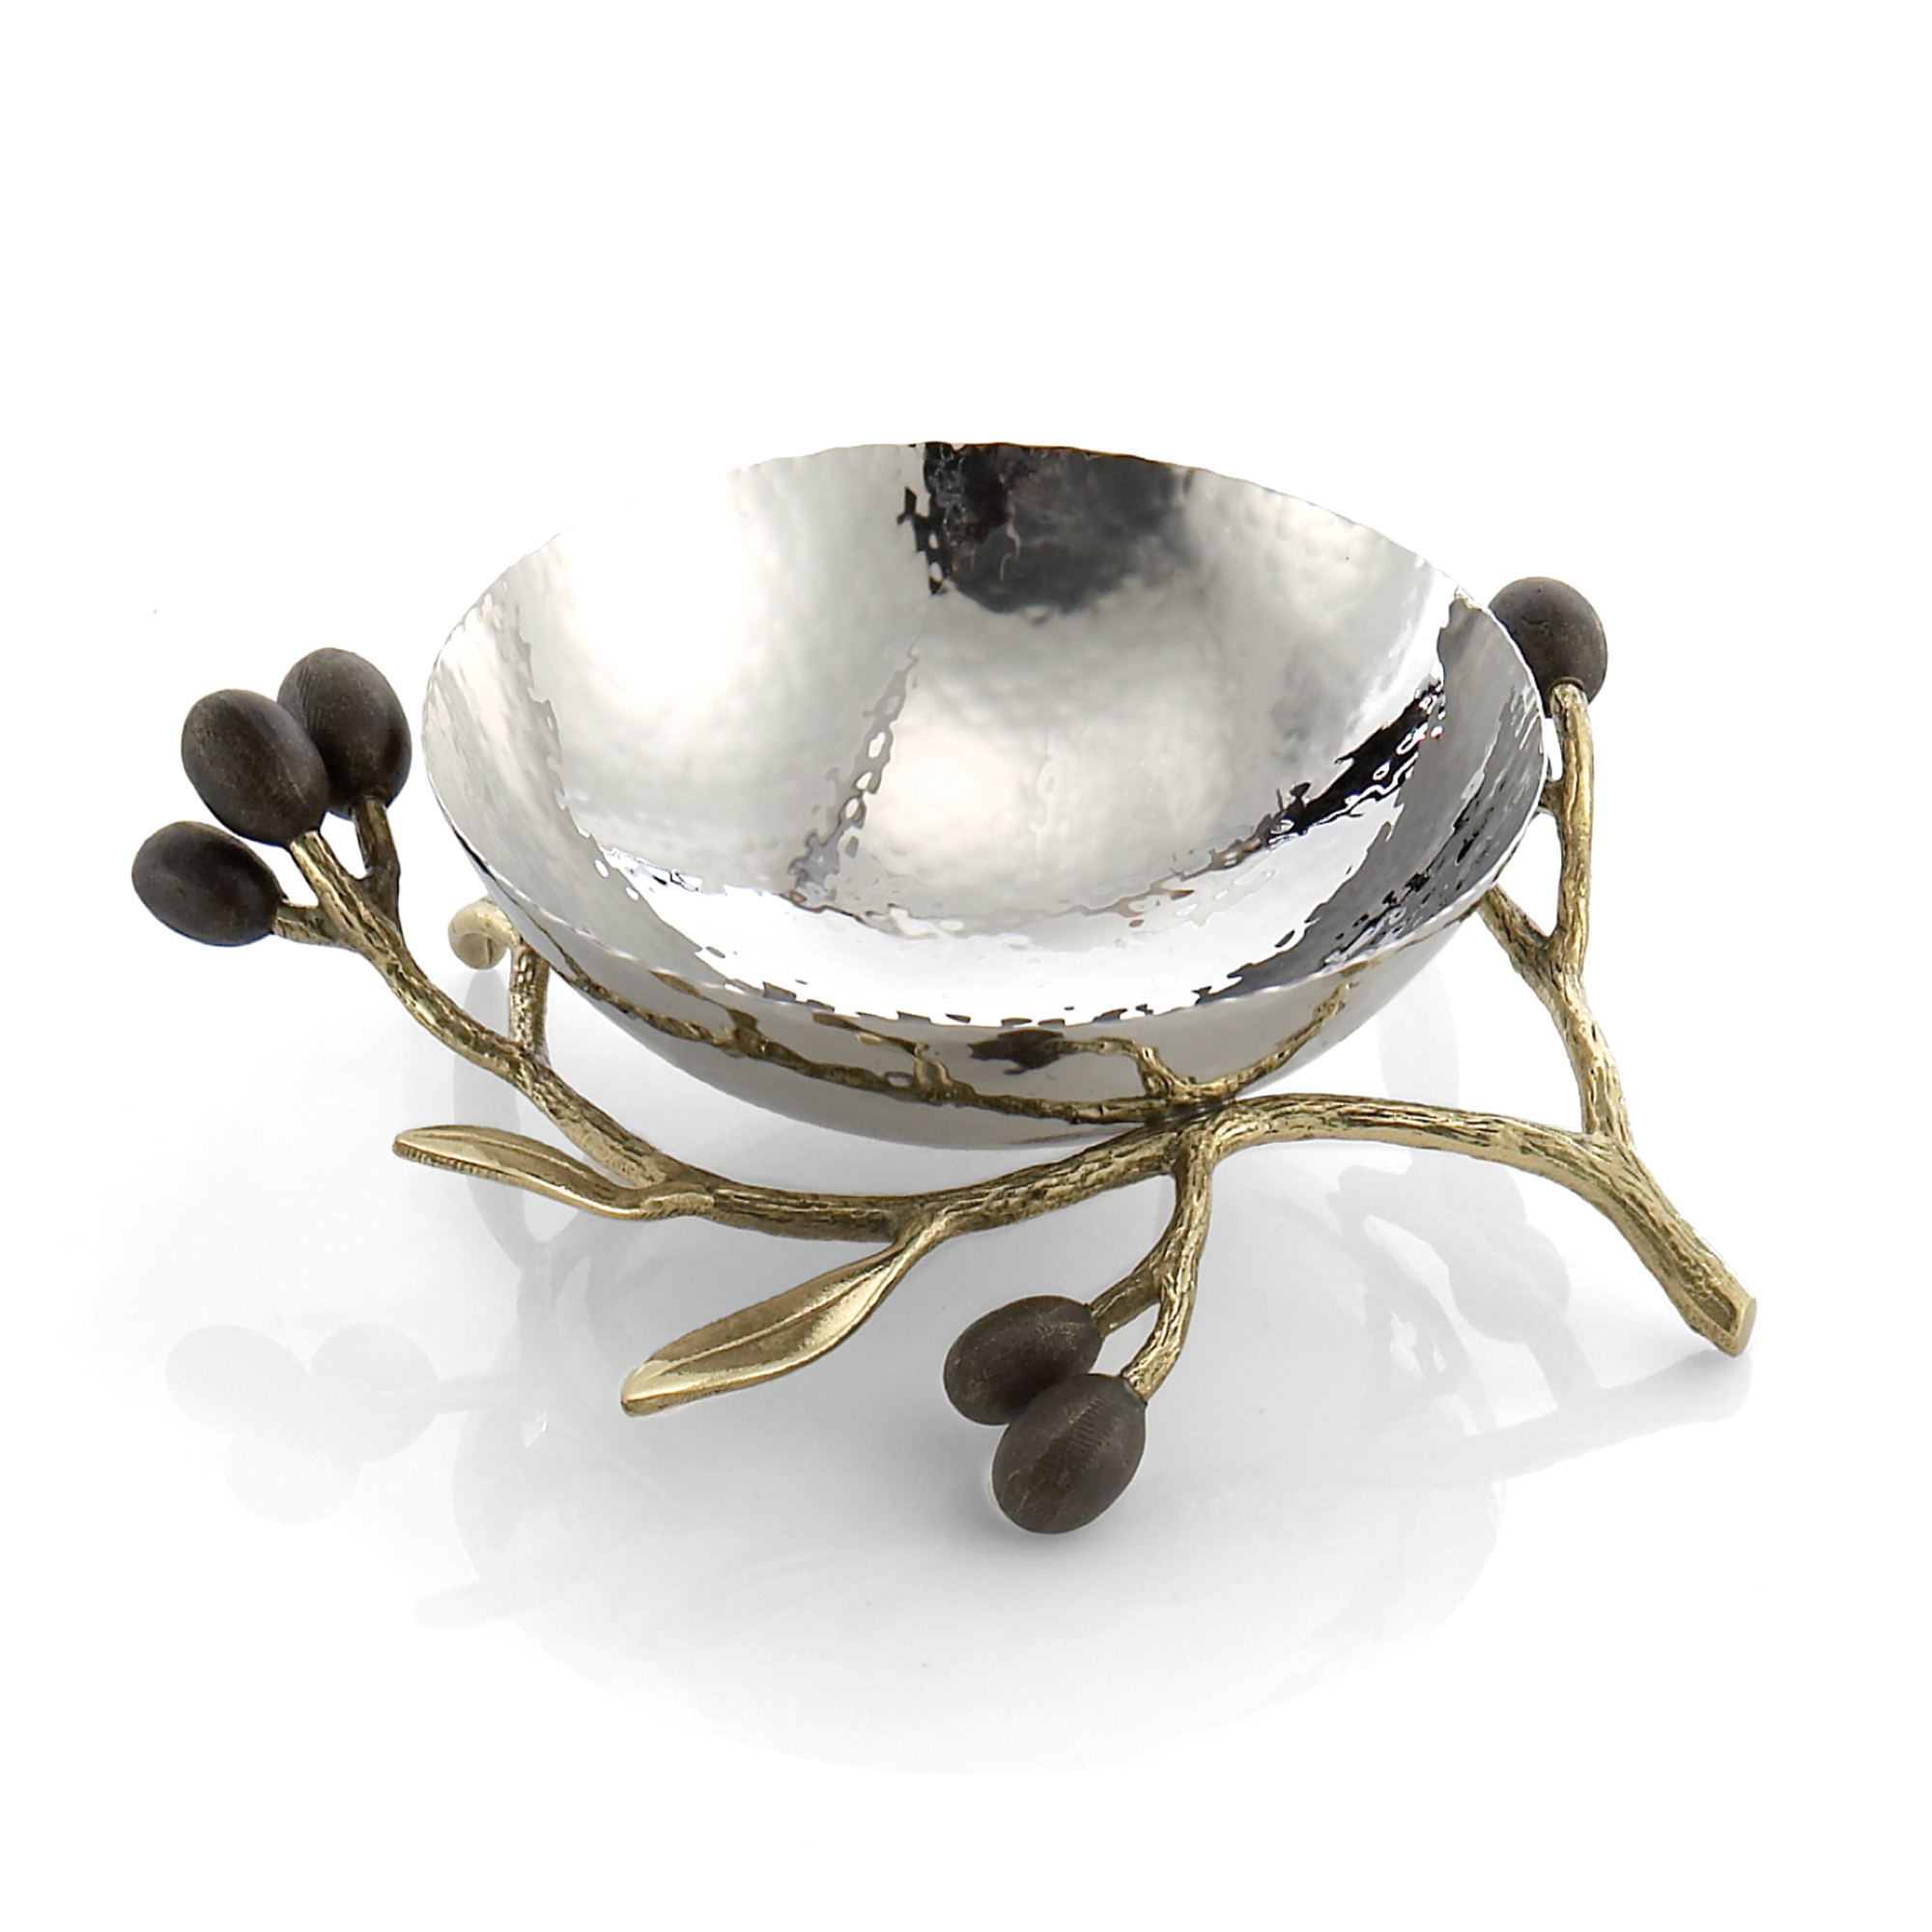 Michael Aram Olive Branch Gold Nut Dish